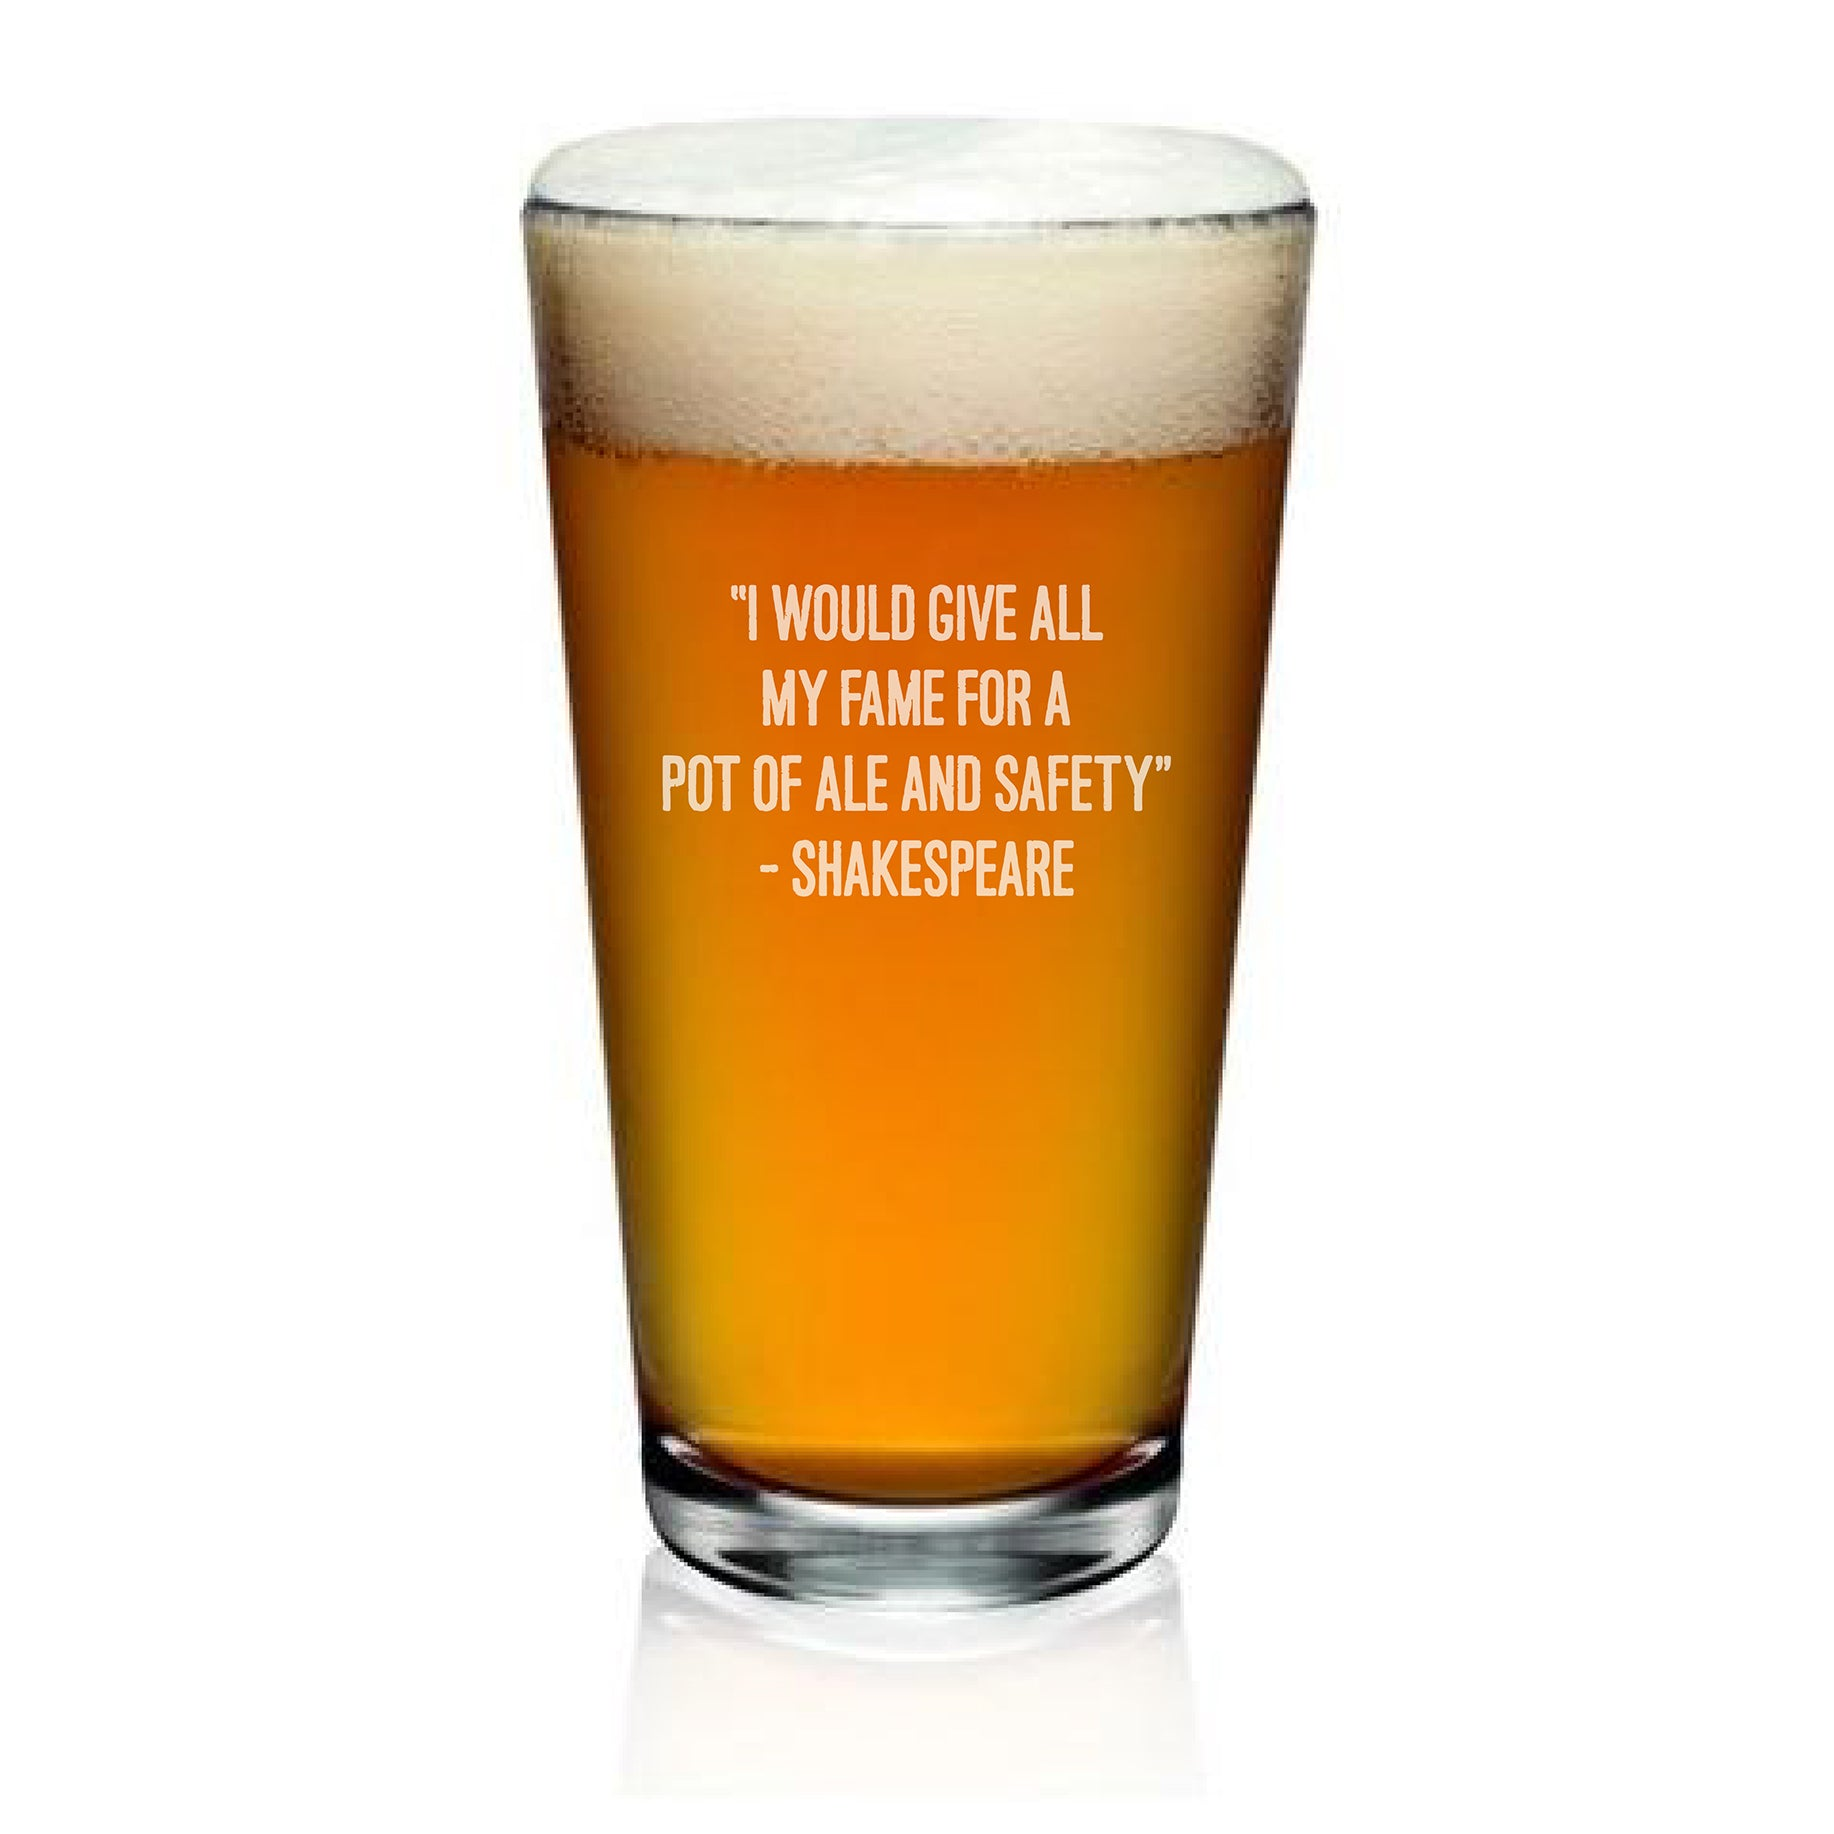 Pint Glass With Shakespeare quote from Henry V